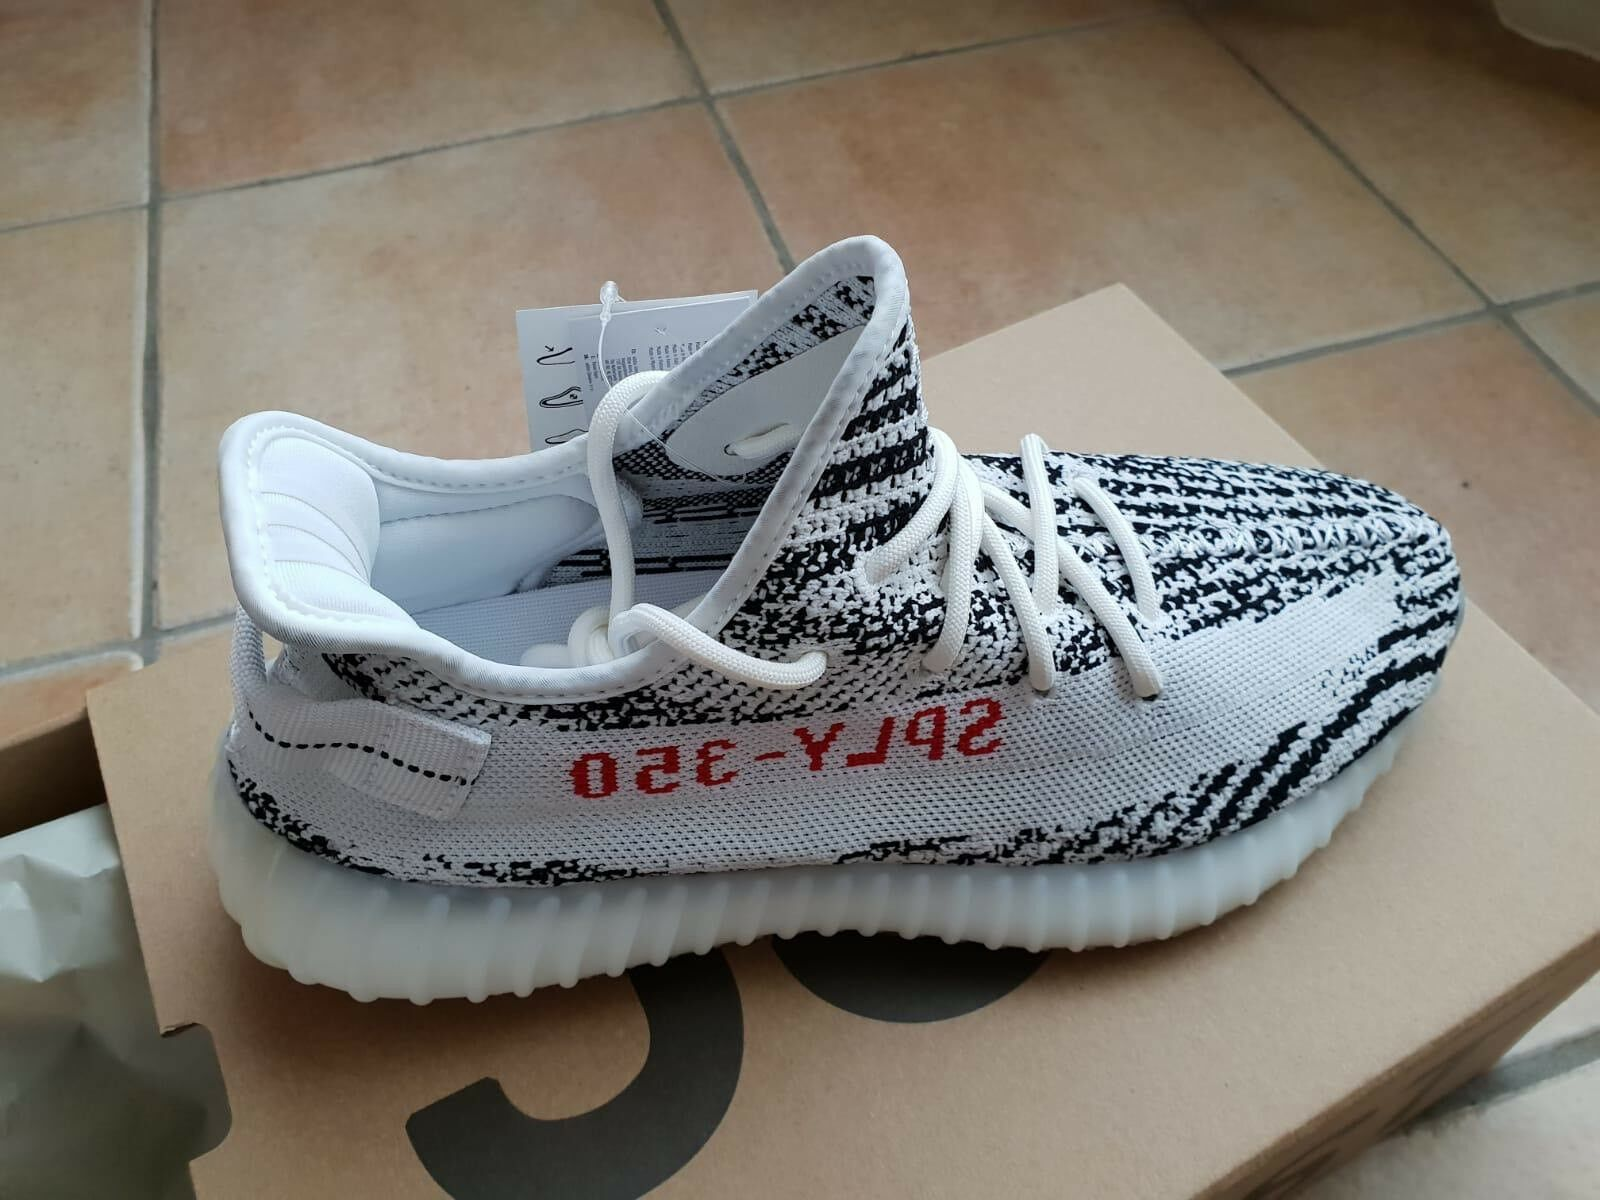 Adidas Yeezy 350 Boost V2 Zebra Zebra Zebra Dimensione 10 1 3 US Authentic 5fe771